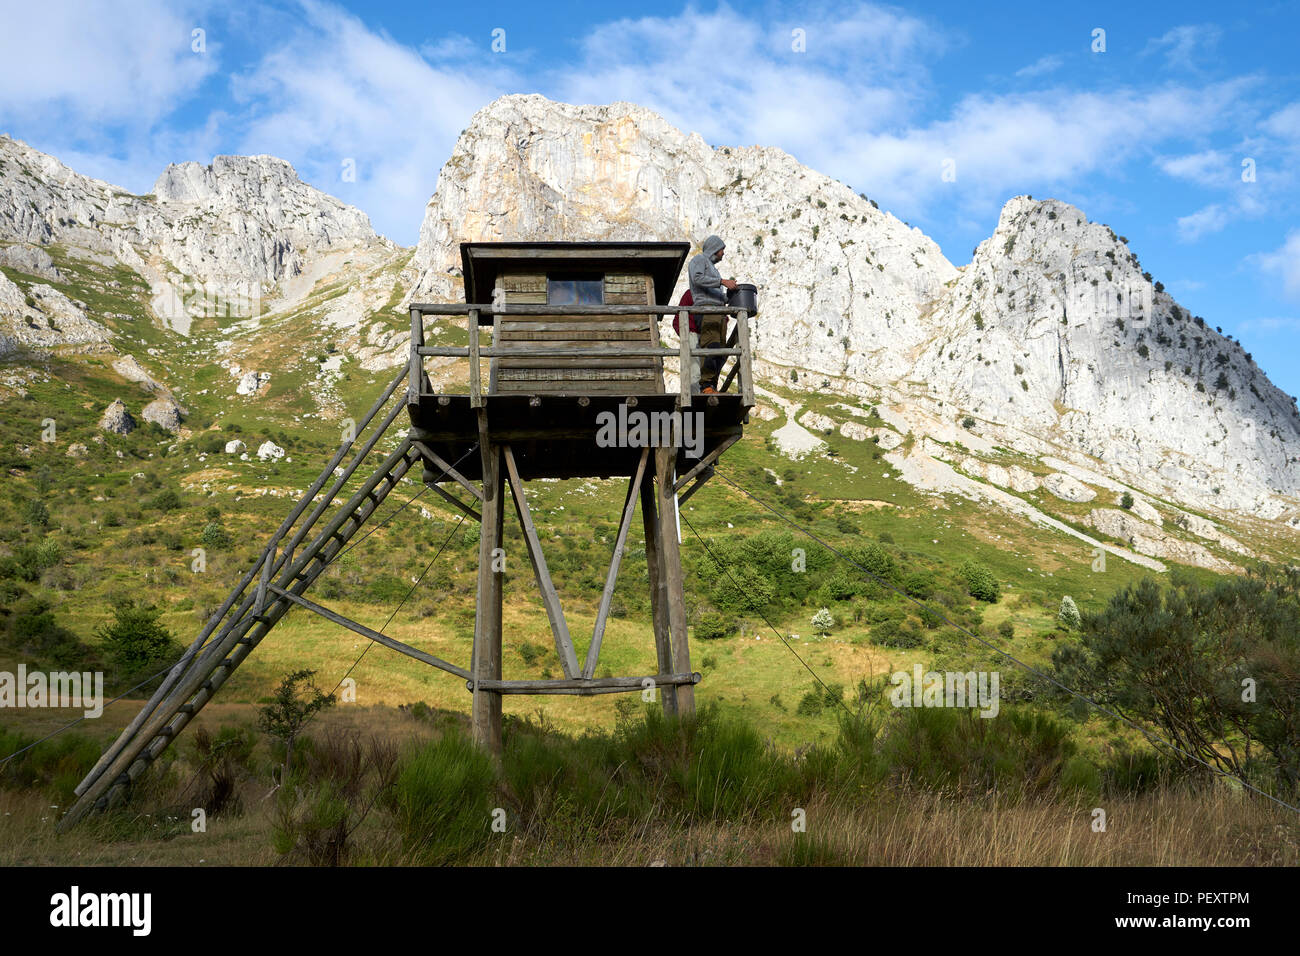 Watchtower for wildlife watching in nature reserve, rewilding, ecotourism - Stock Image